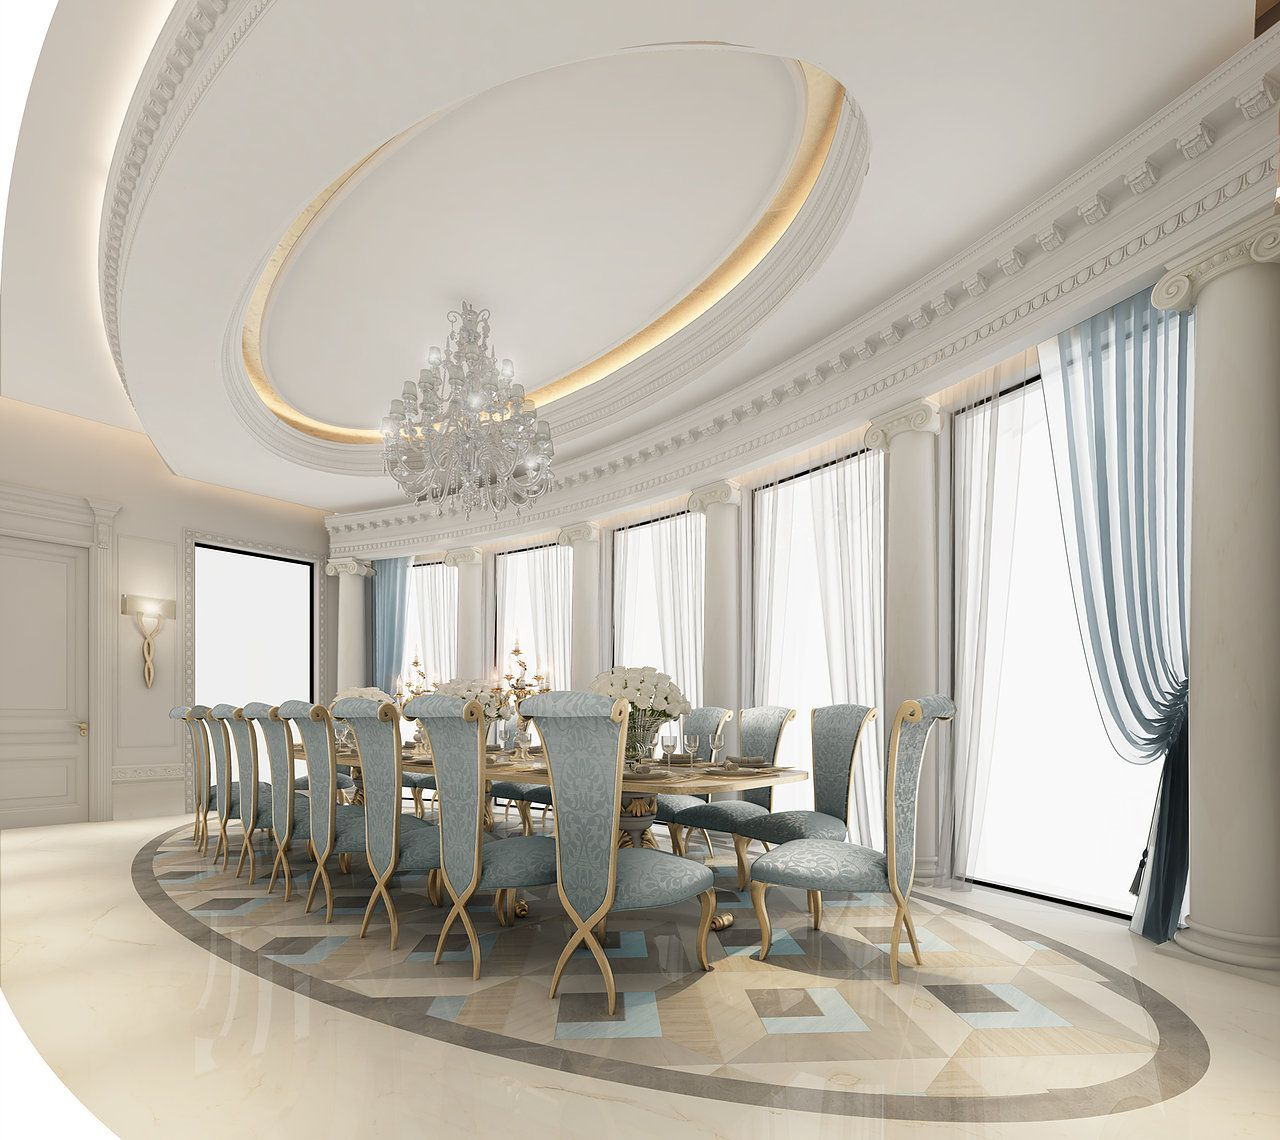 Ions Interior Design Dubai luxury interior design dubaiions one the leading interior